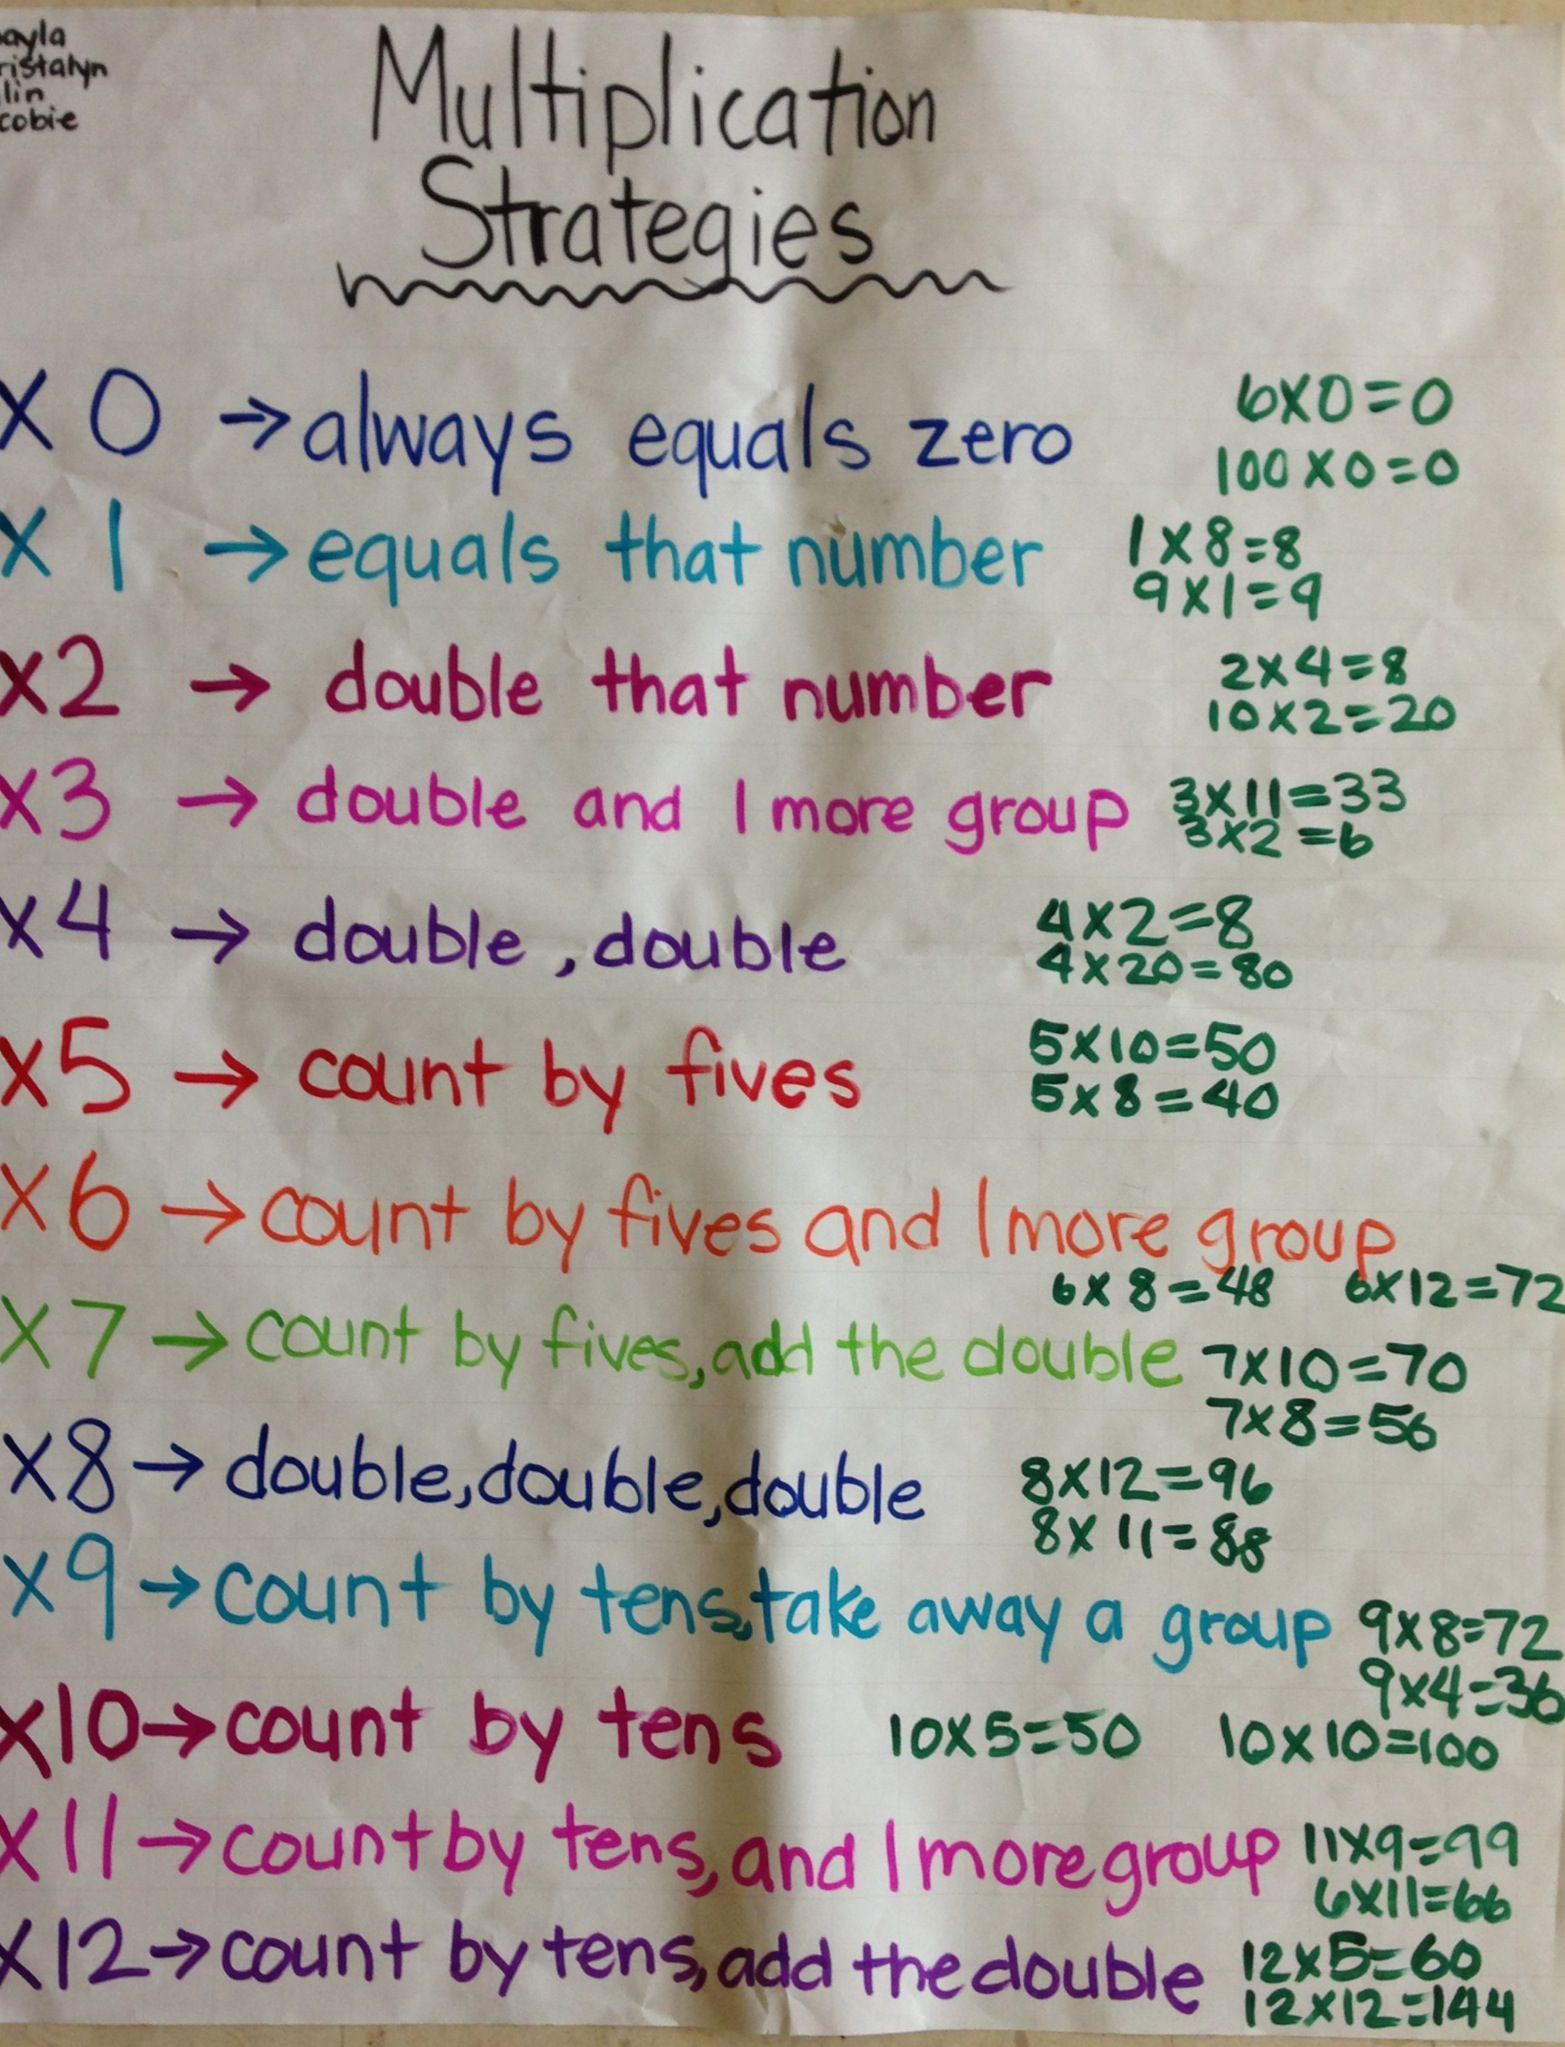 Multiplication Strategies, Especially Useful For Students